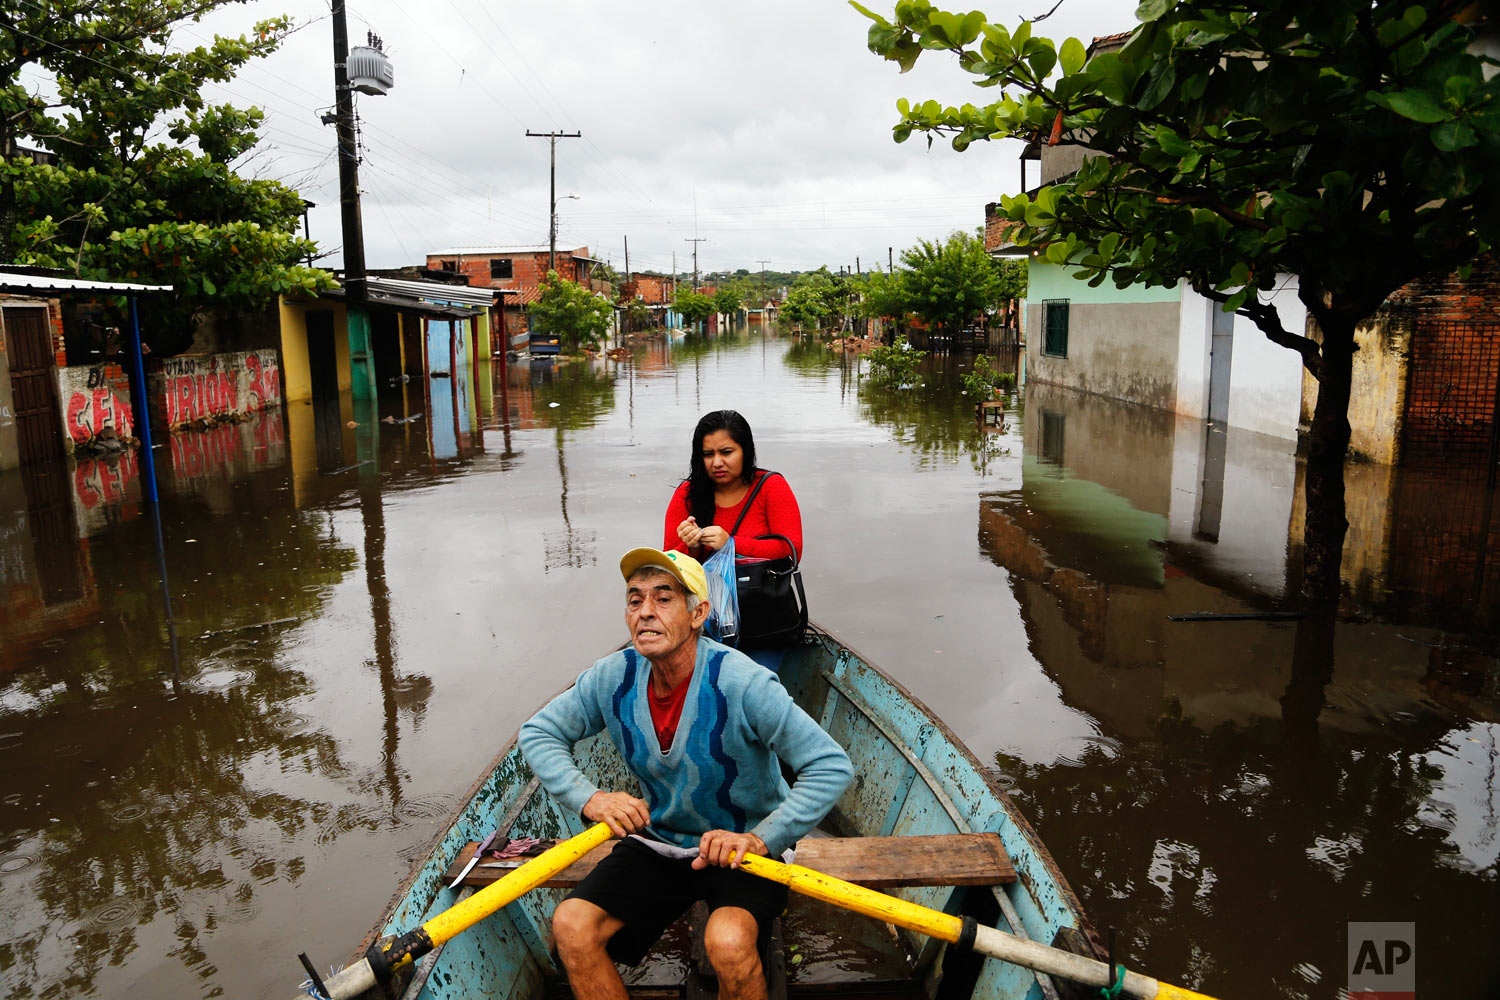 With his daughter as passenger, Ramon Gomez, 65, rows a boat through a flooded street in the Santa Rosa de Lima neighborhood, in Asuncion, Paraguay, April 5, 2019. (AP Photo/Jorge Saenz)